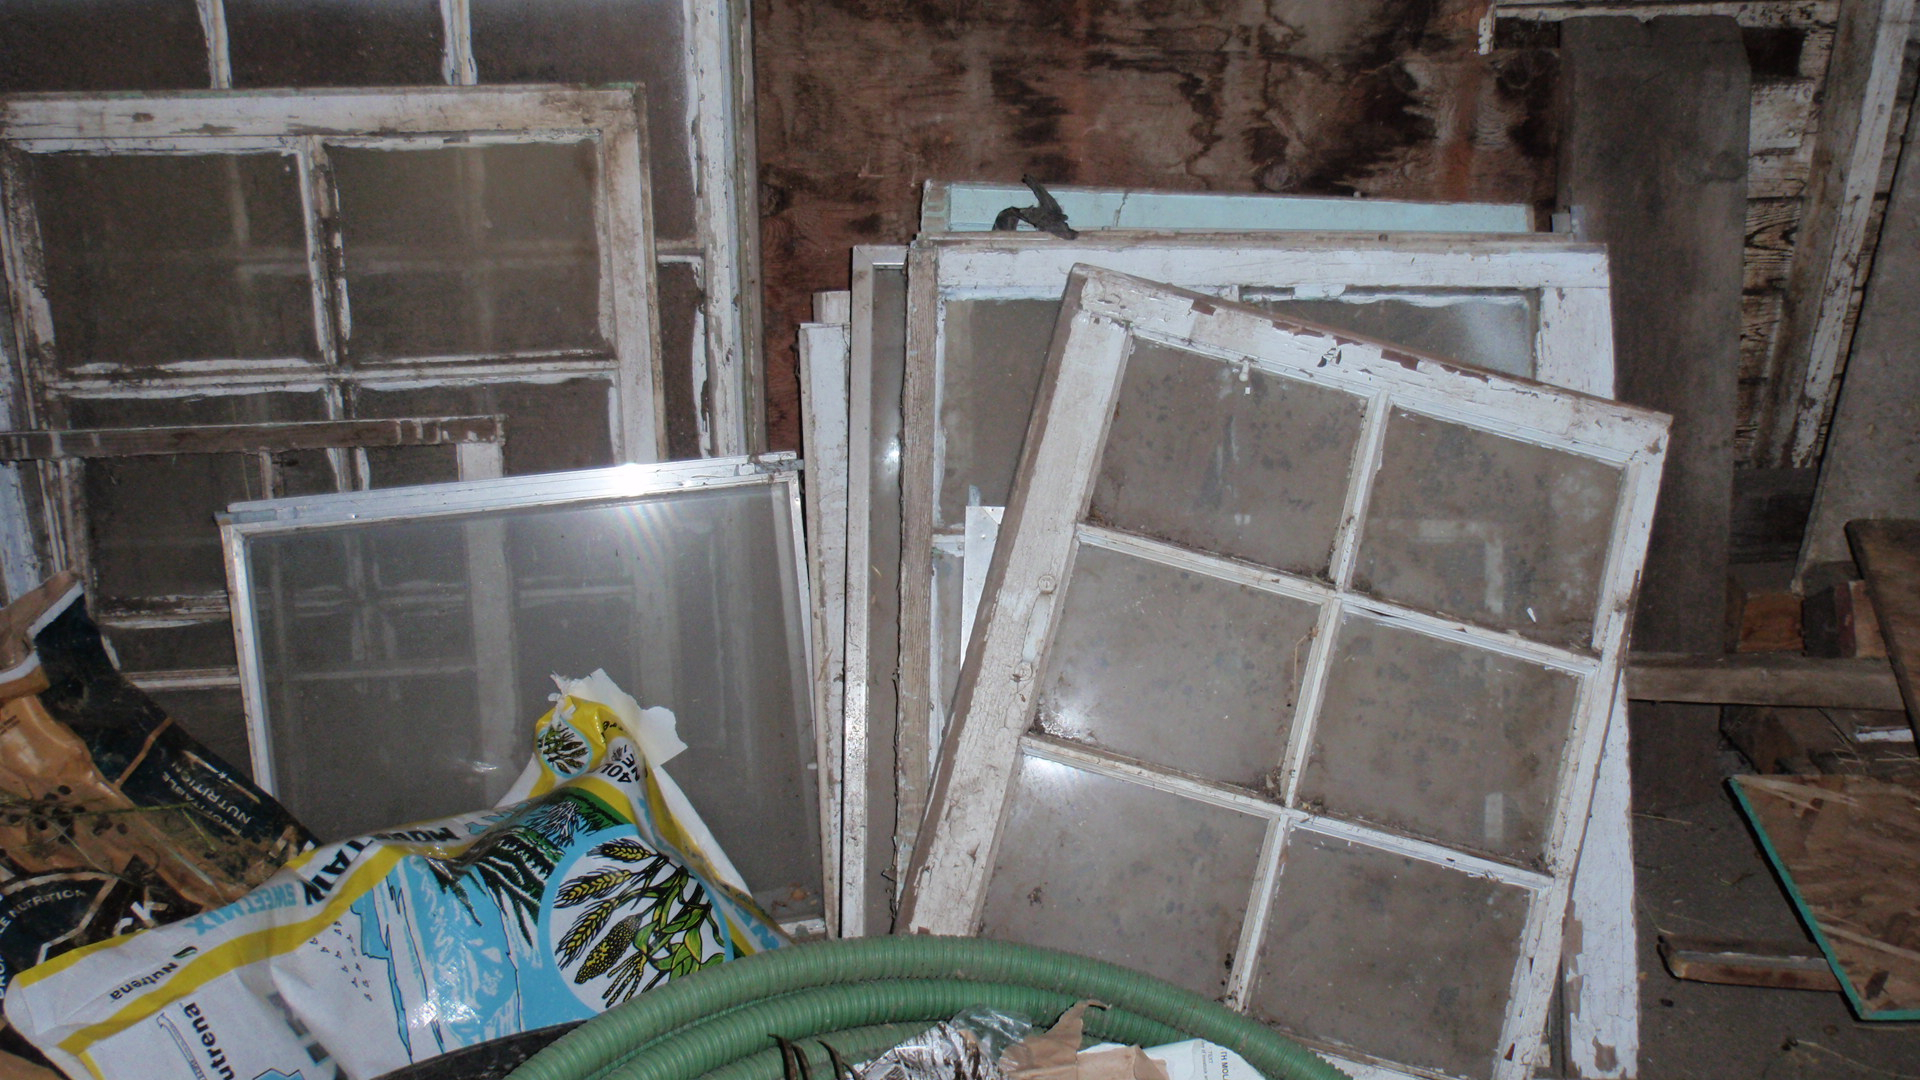 Widely Used Old Stuff Wood Window Pane To Distressed Picture Frame – My Three C's In Old Rustic Barn Window Frame (View 9 of 20)